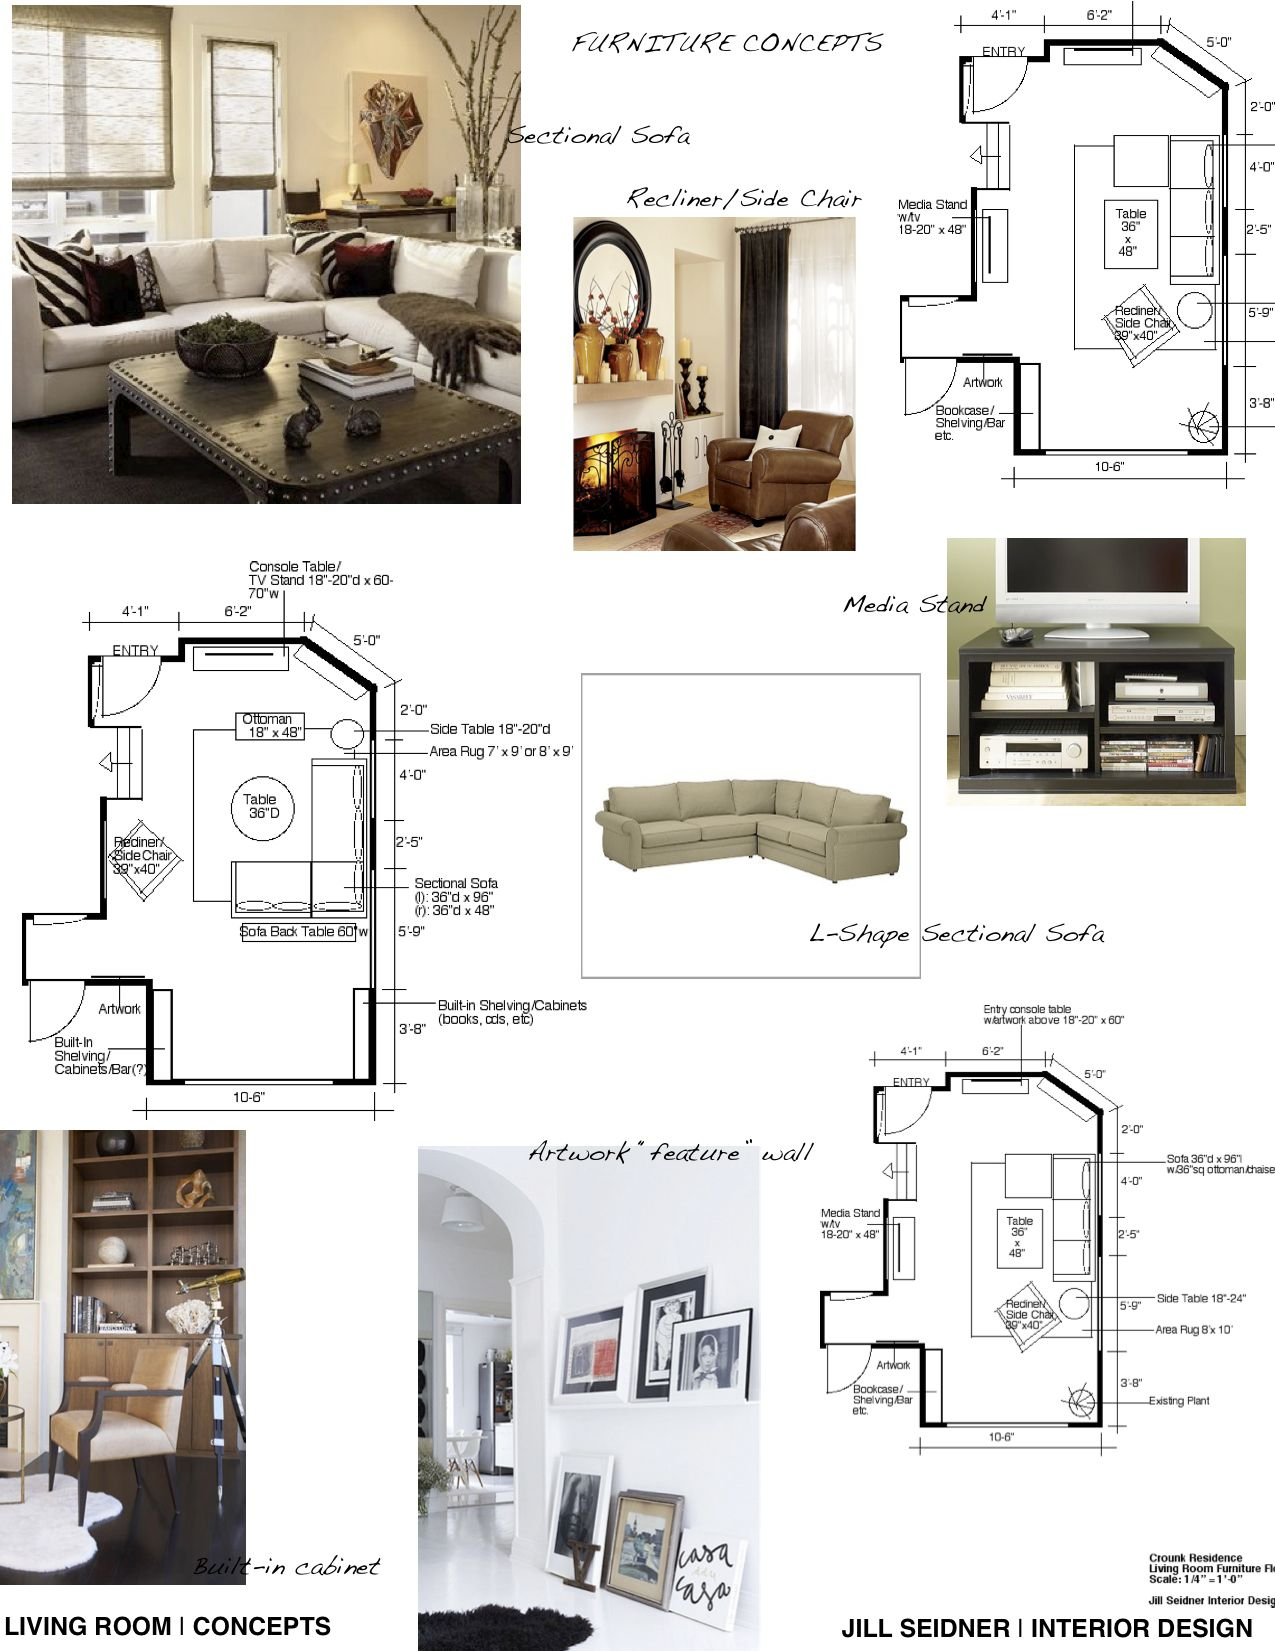 Design Interieur Concept Concept Board And Furniture Layouts For A Living Room